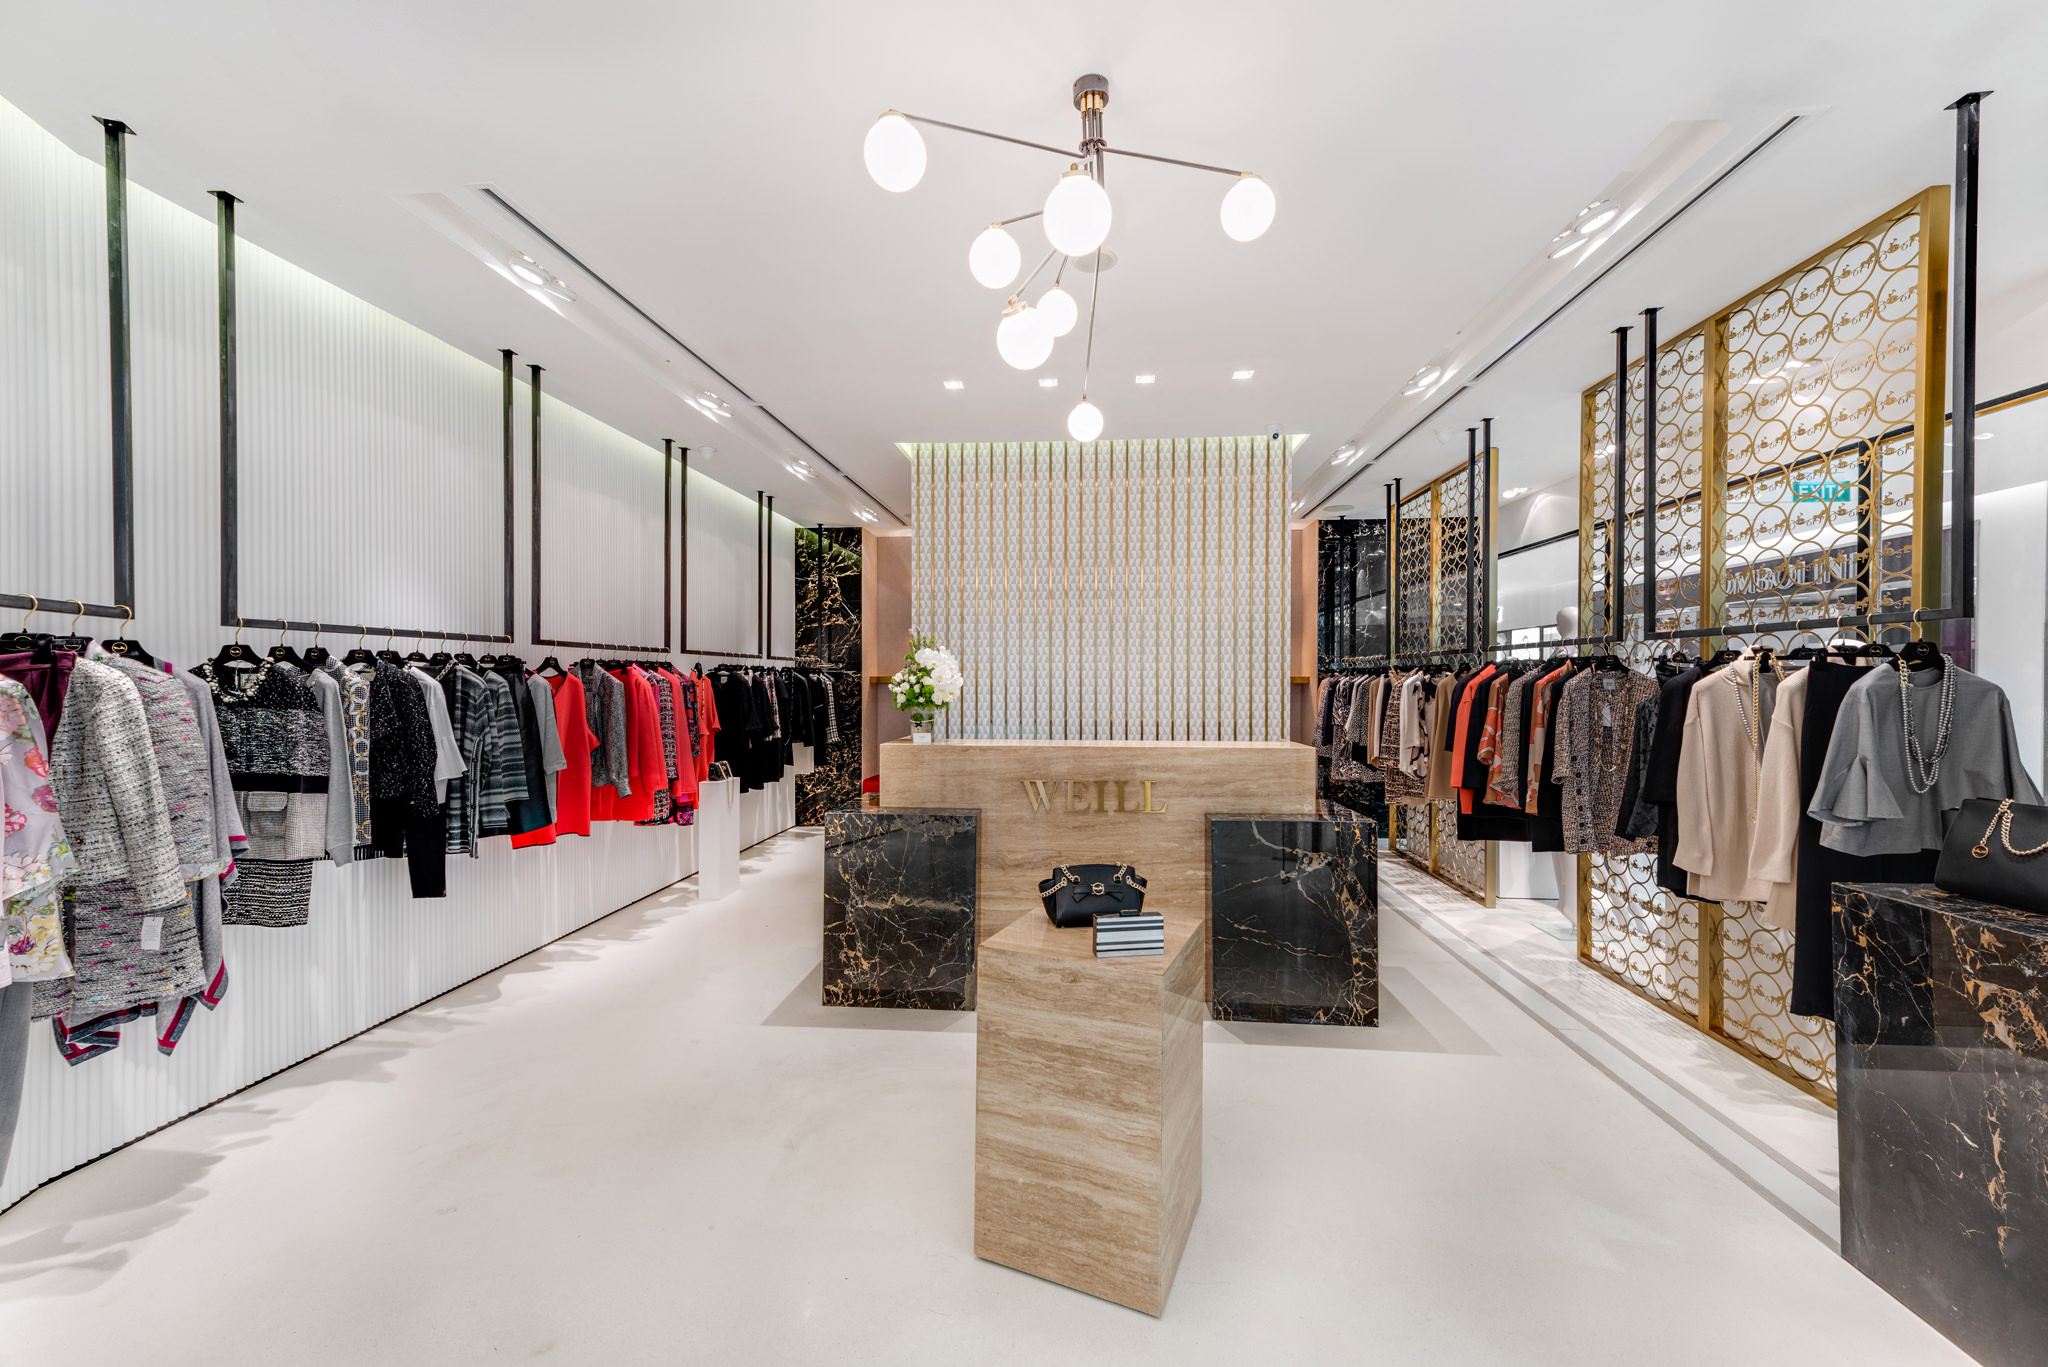 20160801 - Weill - HCM - Commercial - Interior - Store - Retouch 0004.jpg